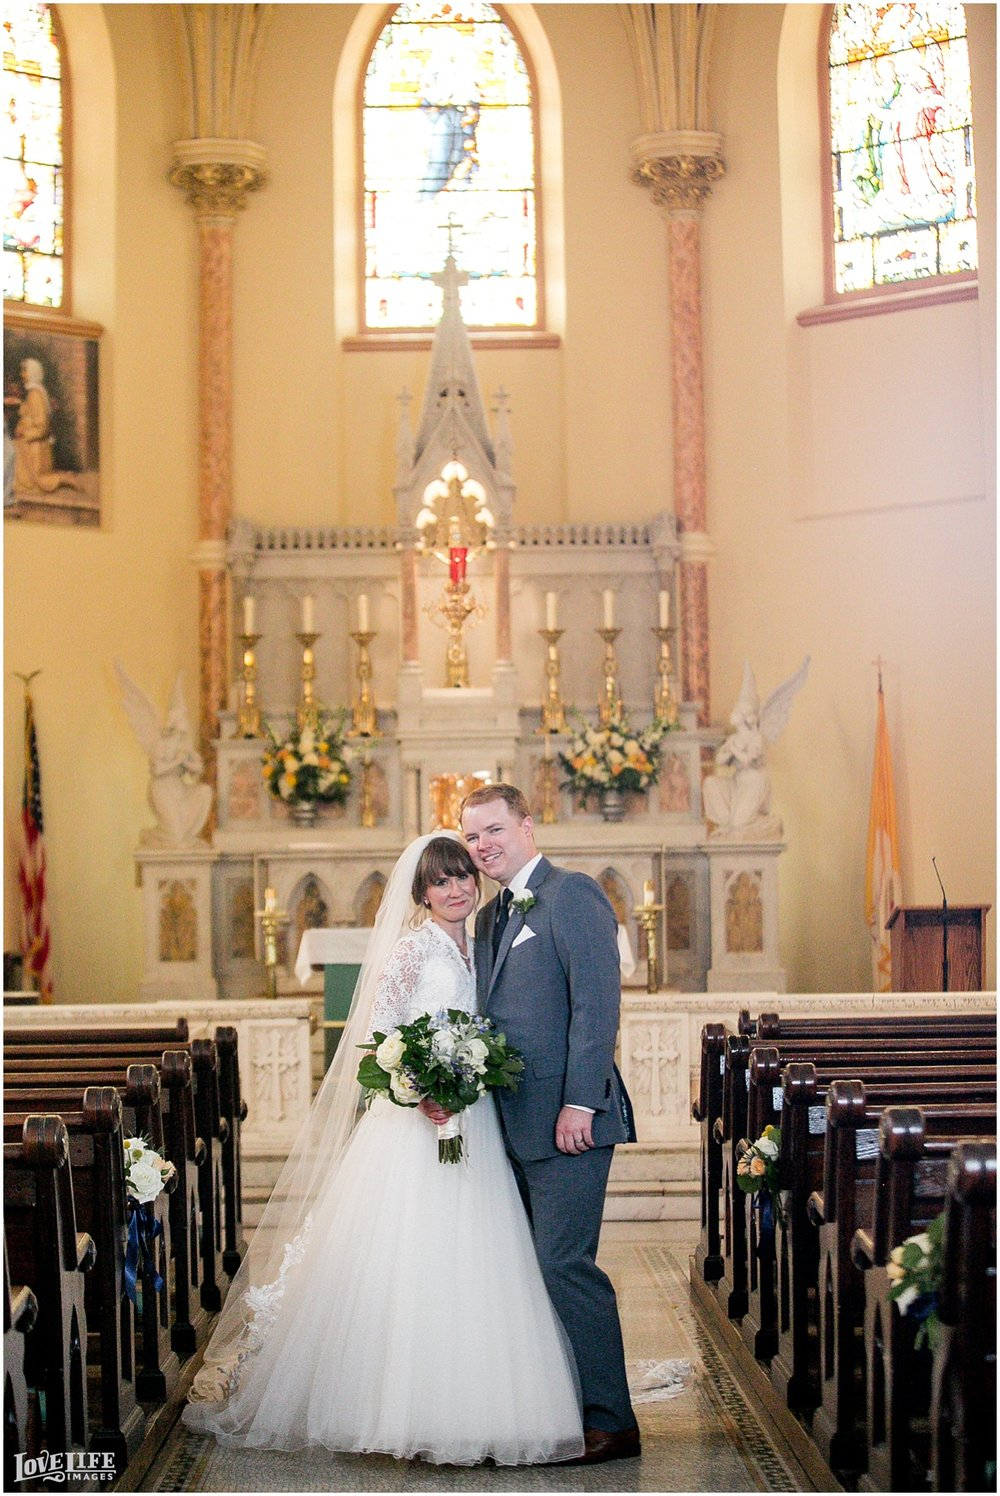 Dumbarton House DC Wedding bridal portrait in church.jpg